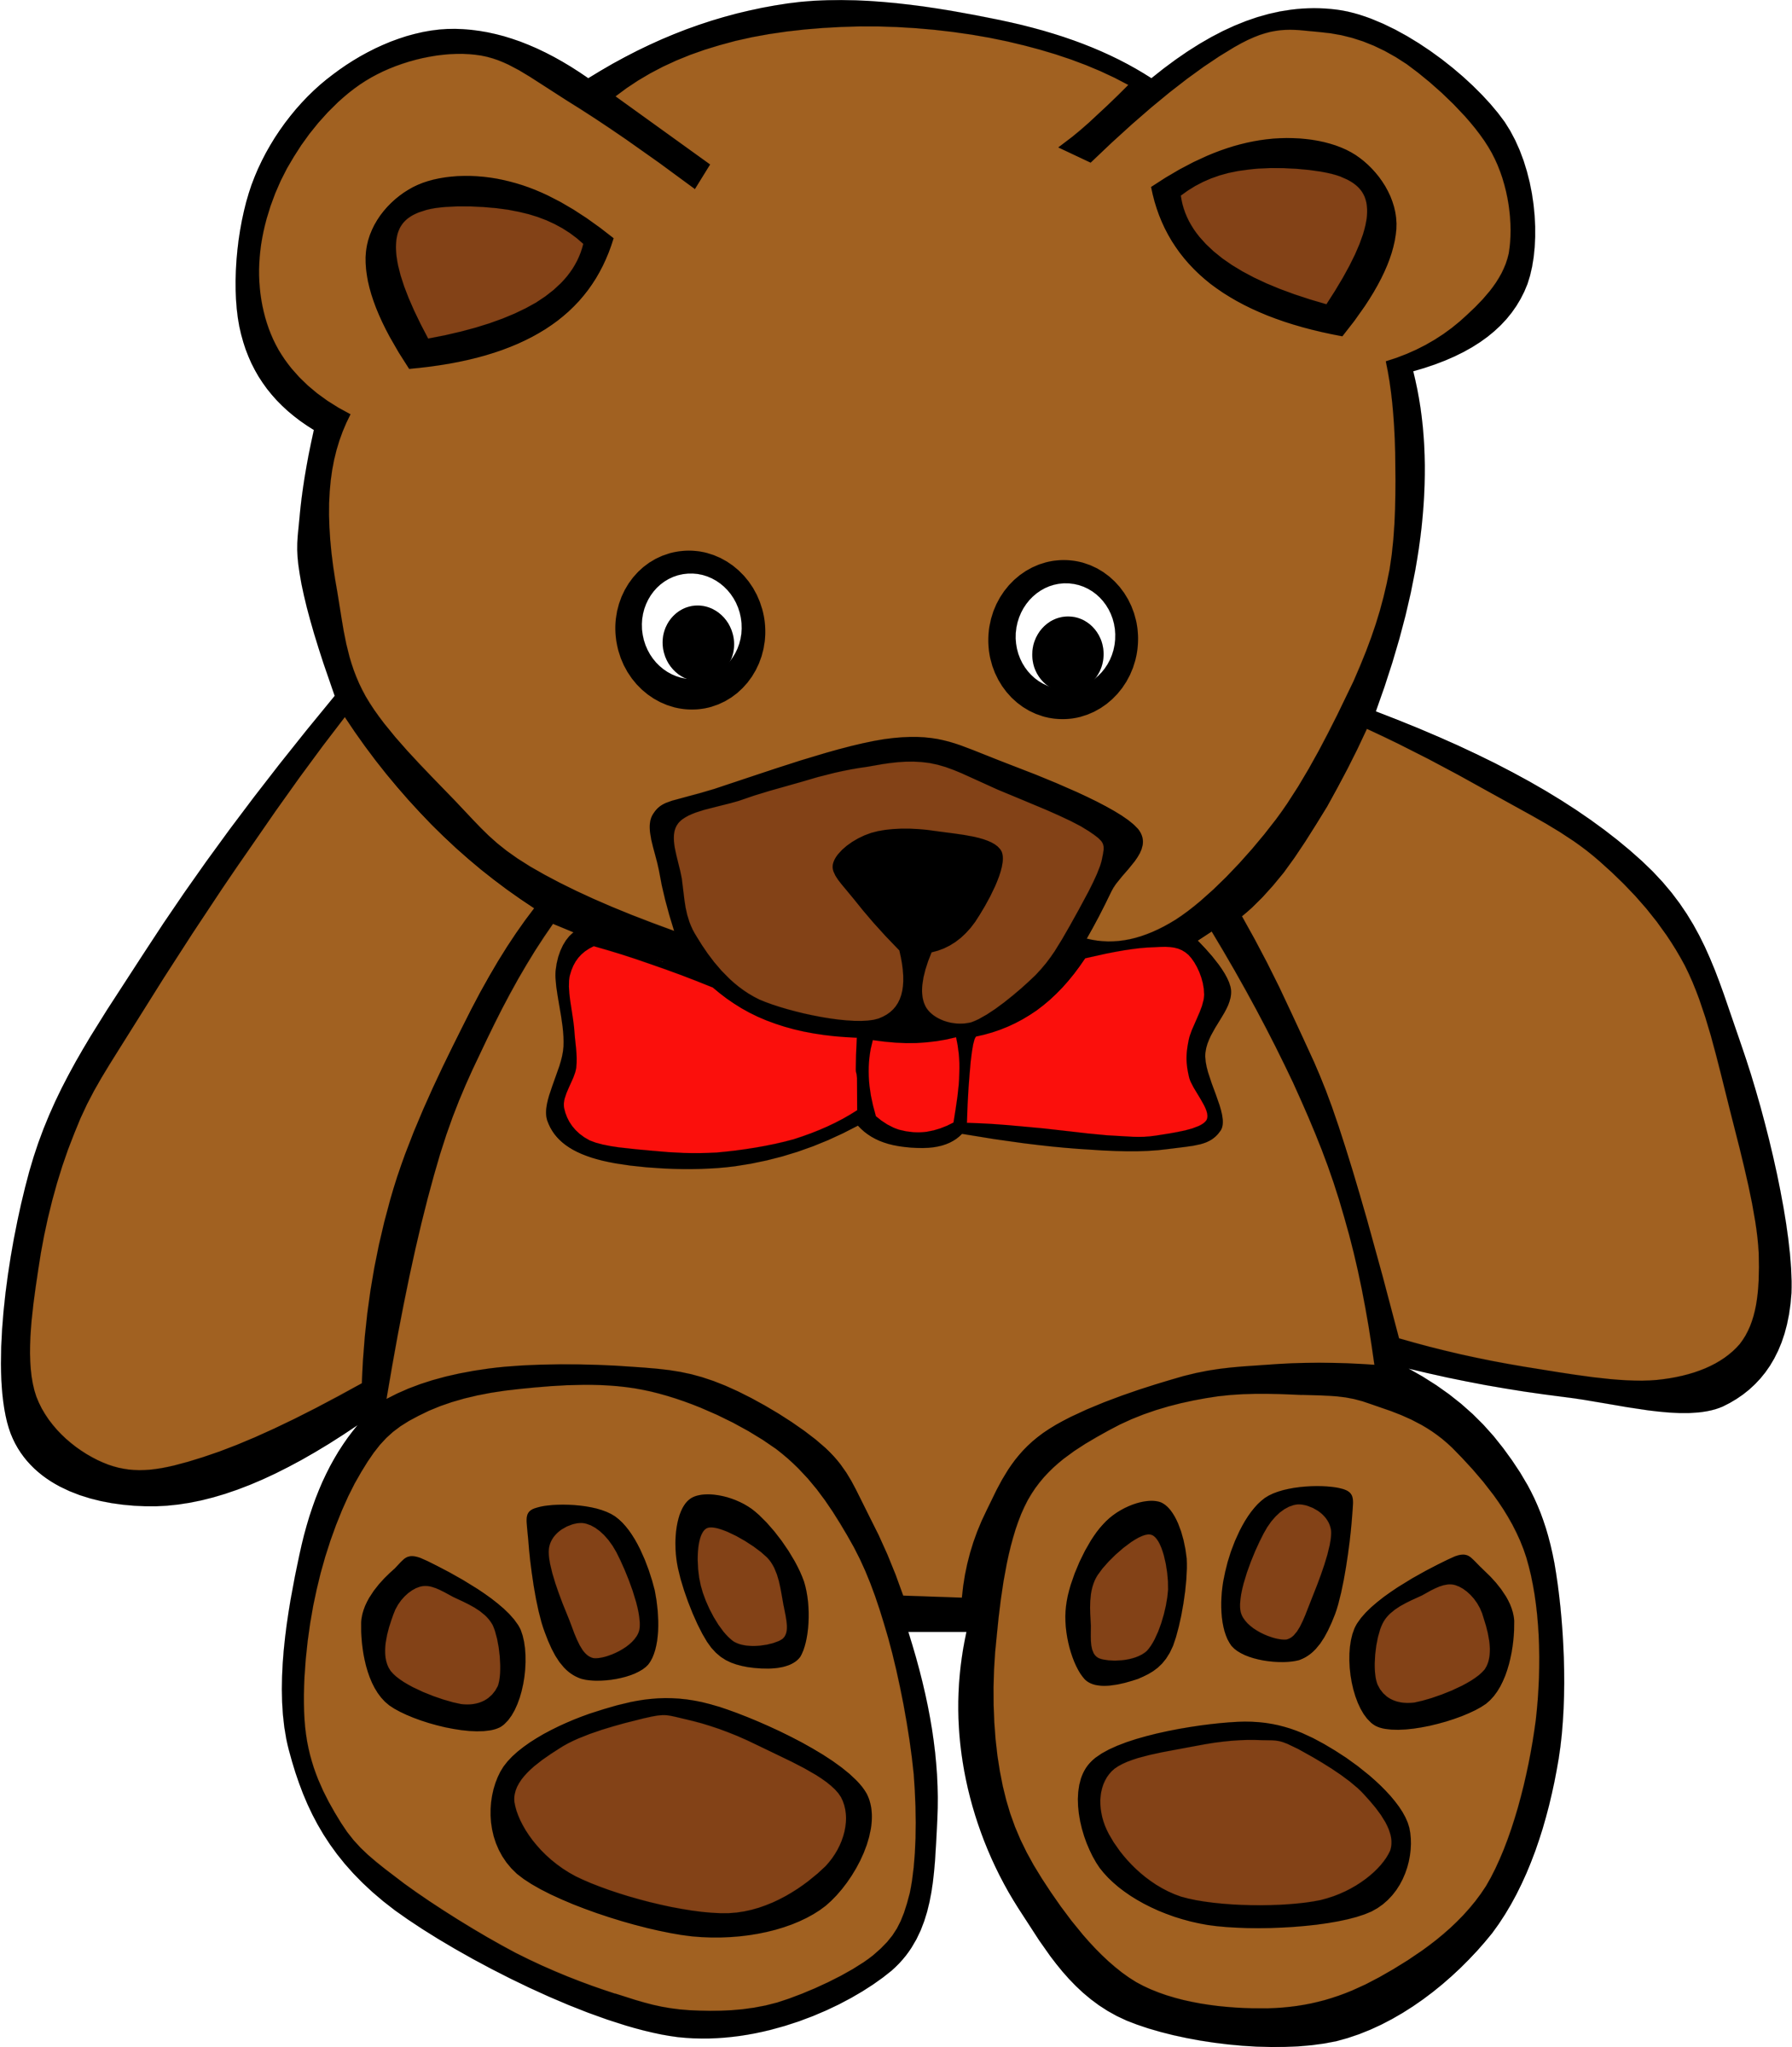 Bowtie .png. Simple teddy bear with